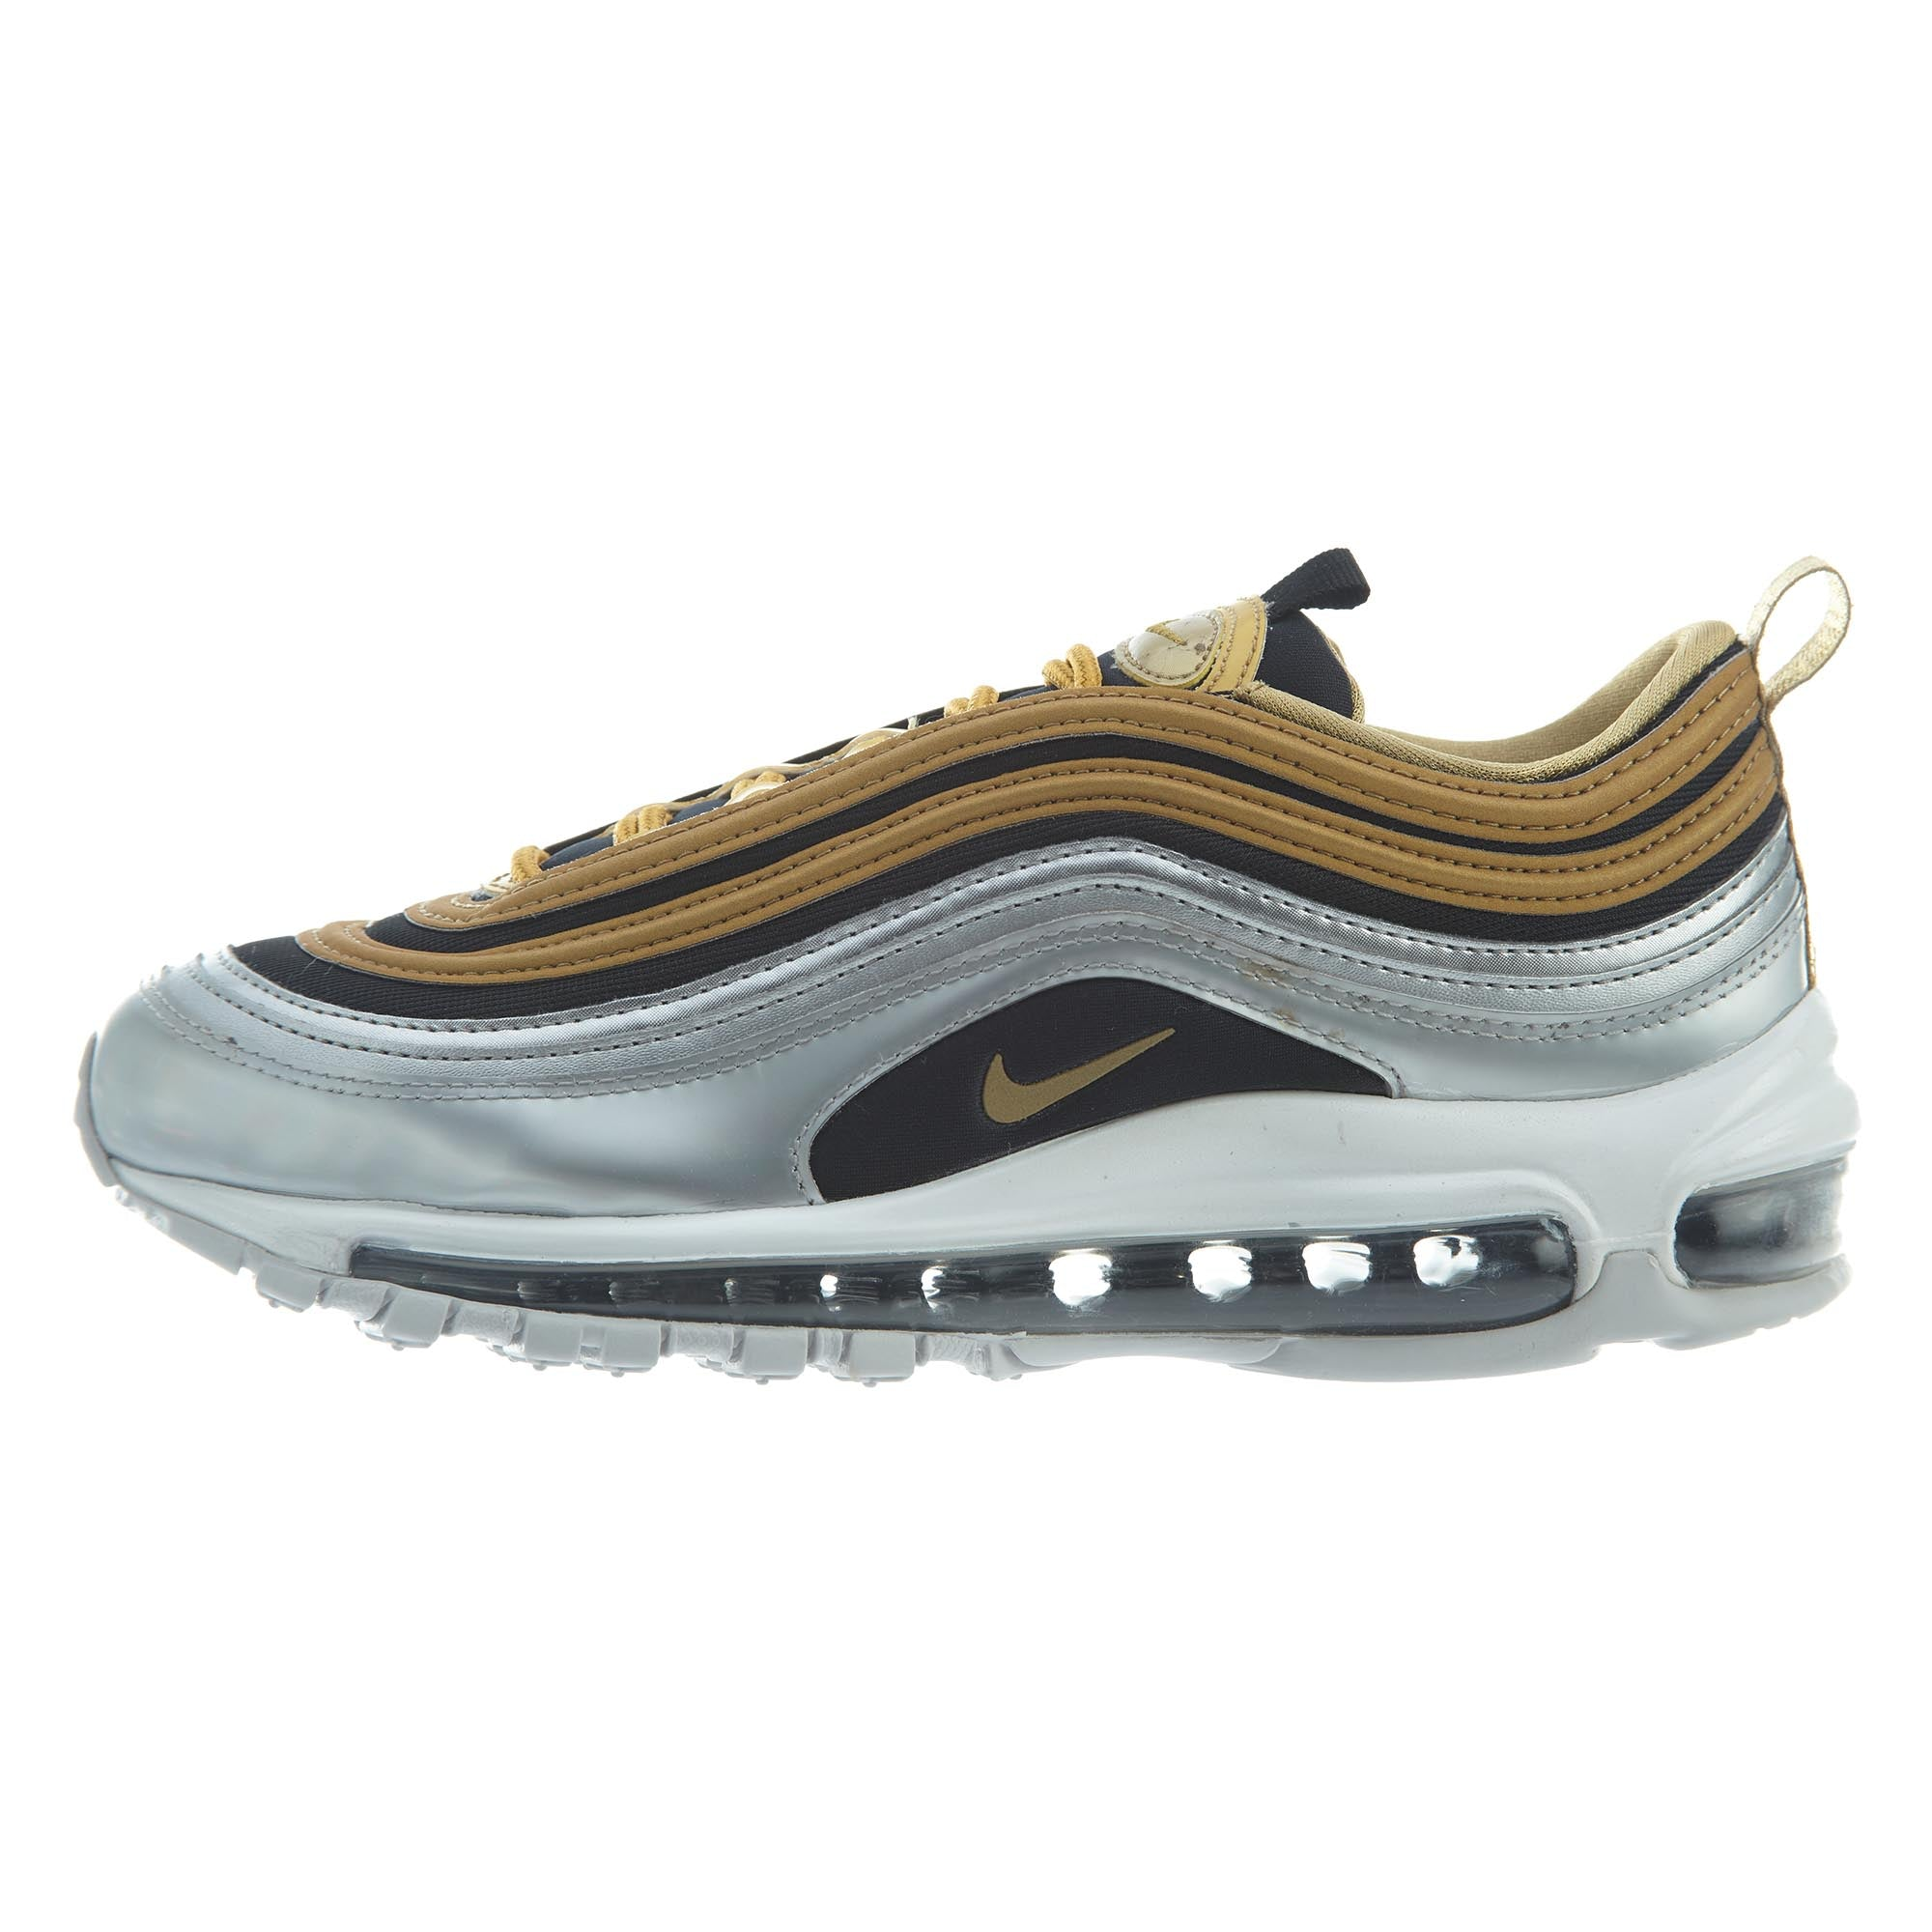 e3052dee945f6 Nike Air Max 97 Se Womens Style   Aq4137-700 – Sneaker Experts